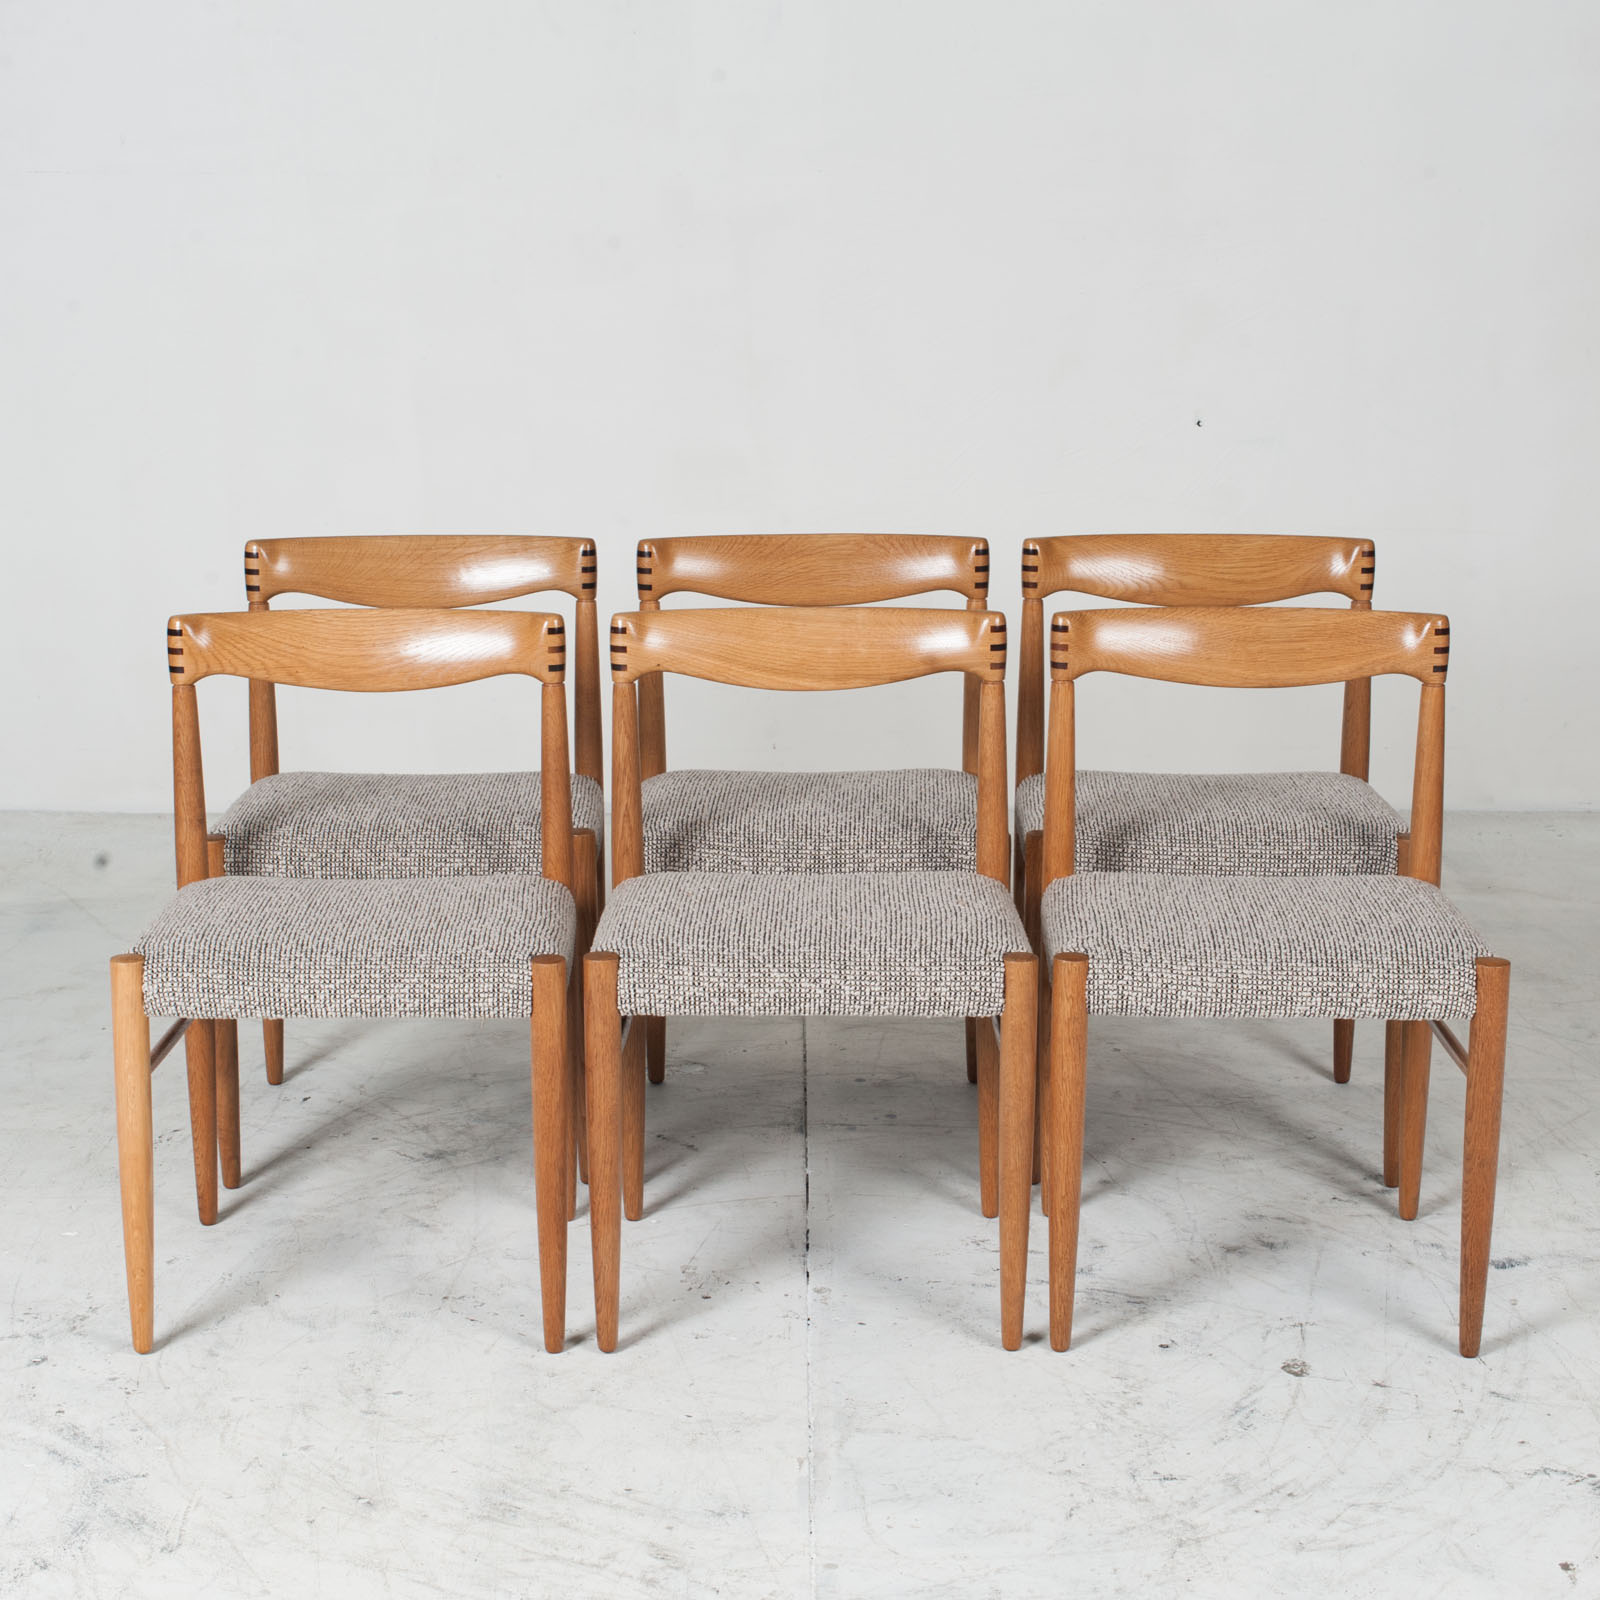 Set 6 Dining Chairs By H.w.klein In Oak And Textured Grey Wool 1960s Denmark 012